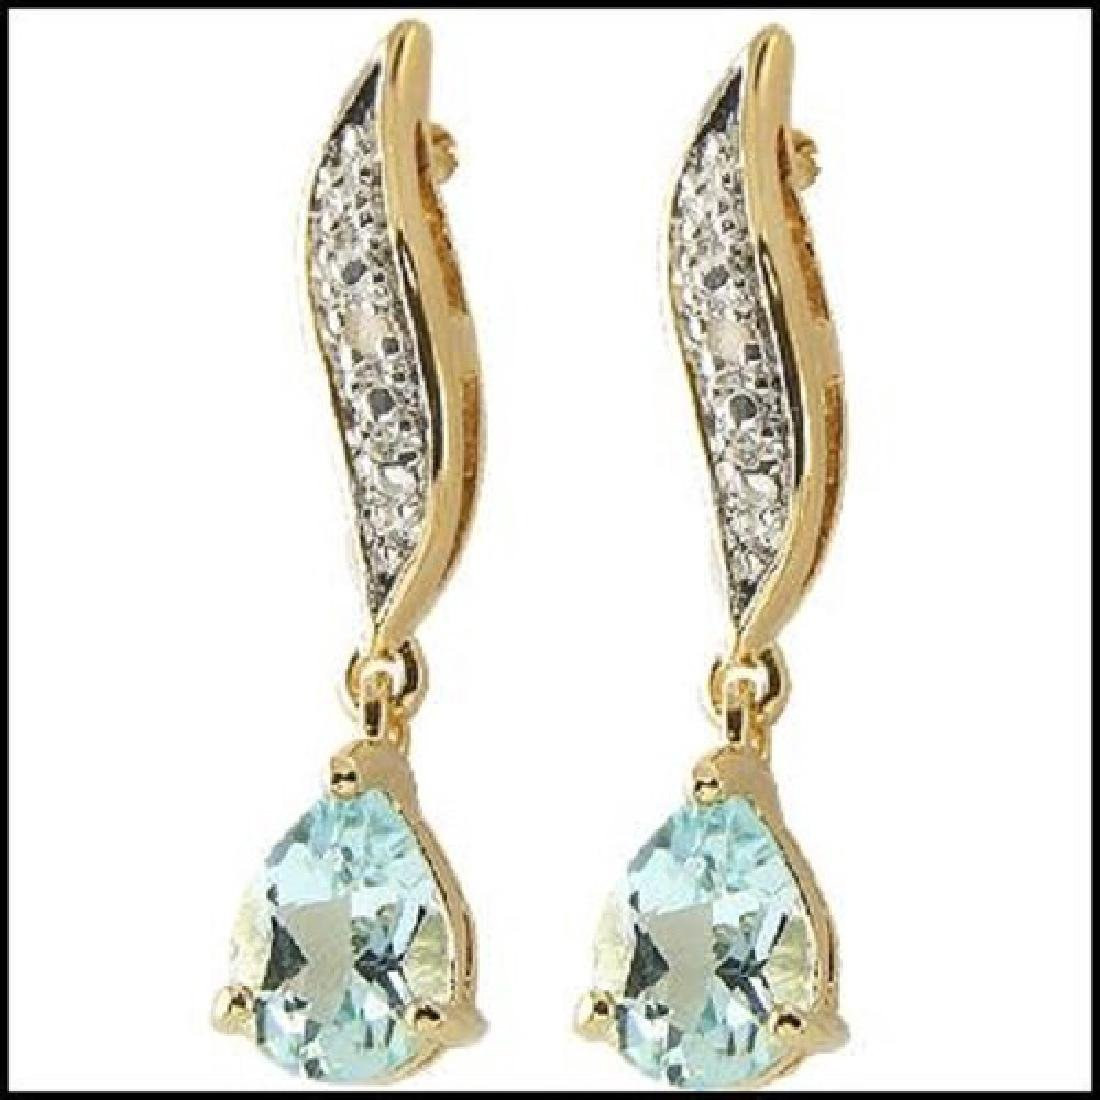 2.82 CT Blue Topaz & Diamond Designer Earrings $785